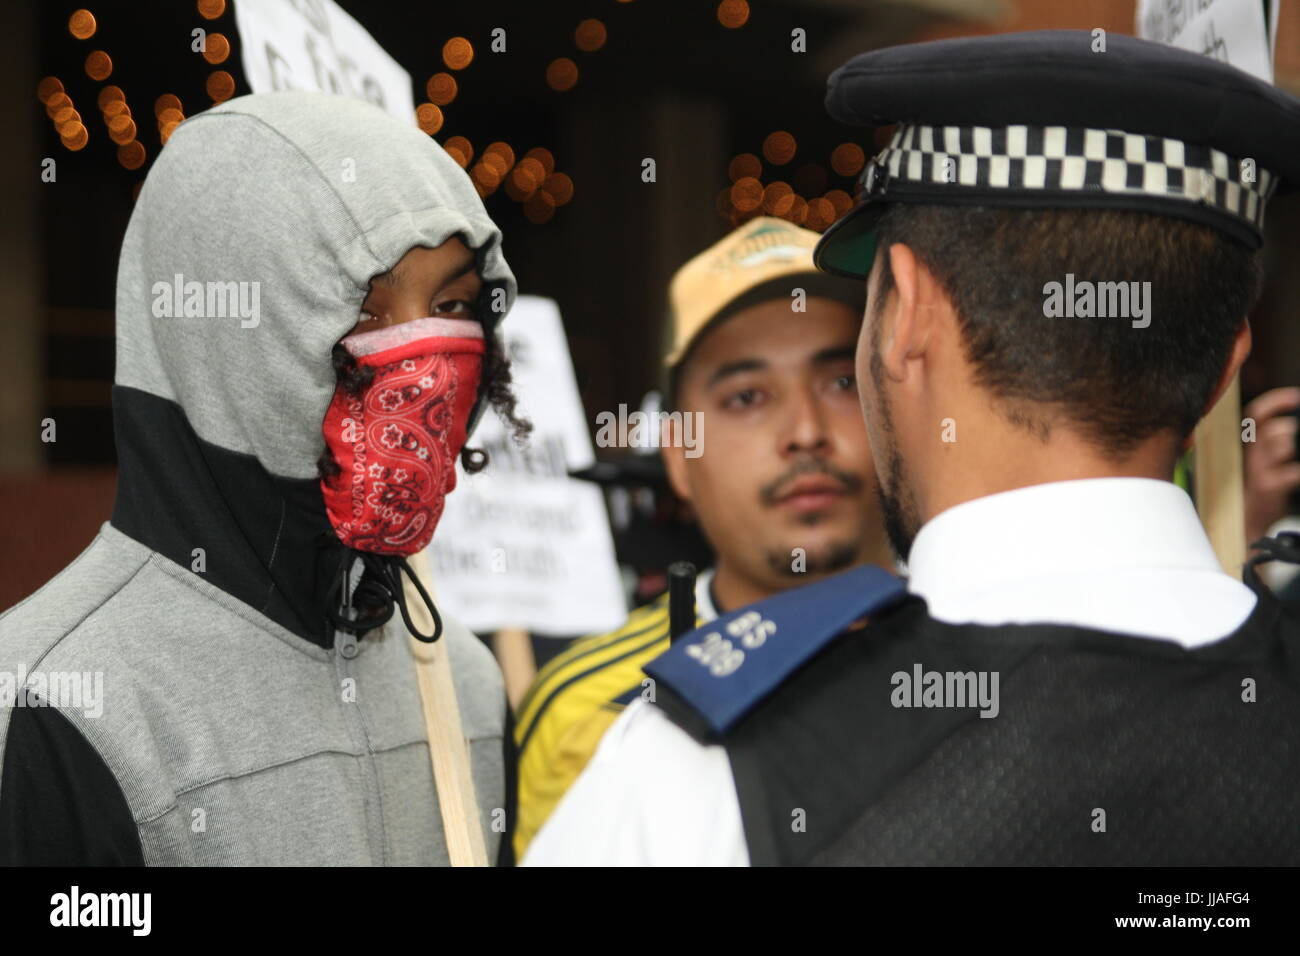 London, UK. 19th July 2017. A policeman faces a couple of young protesters.  Protests take place outside the Kensington and Chelsea Council building as the council meets to  discuss the Grenfell disaster a month after it happened. Roland Ravenhill/Alamy Live News. Credit: Roland Ravenhill/Alamy Live News Stock Photo